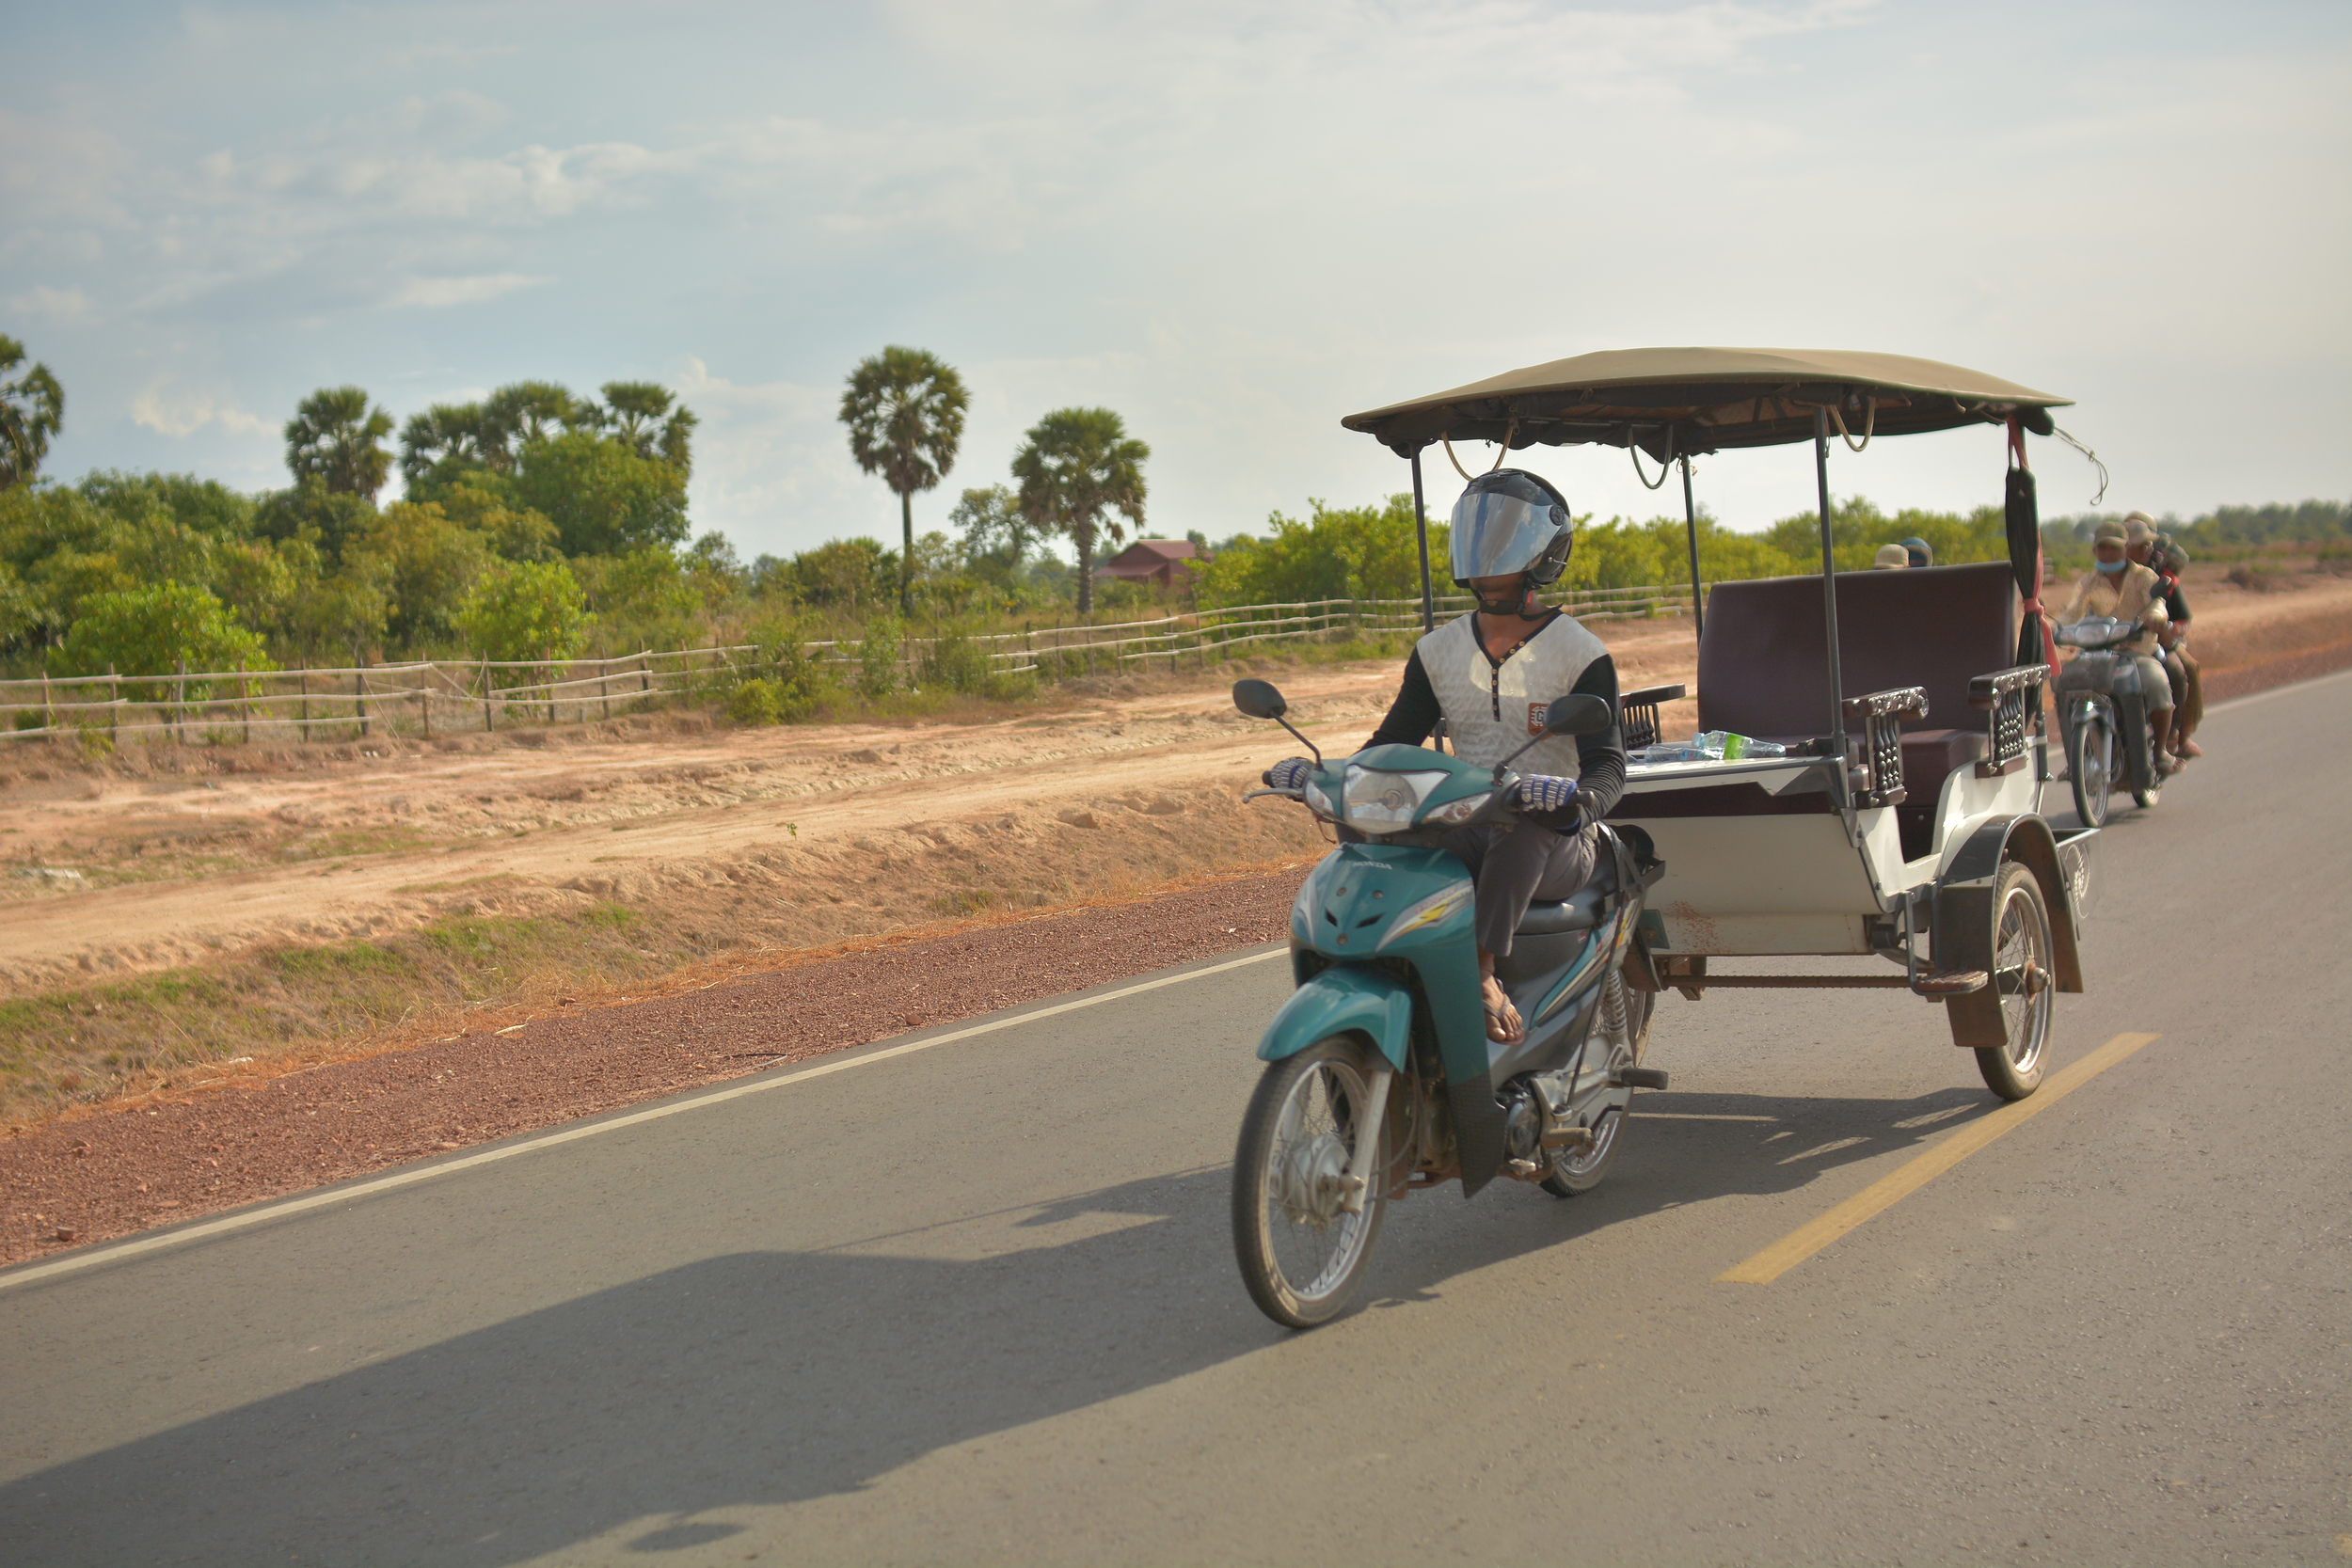 On the road, Siem Reap